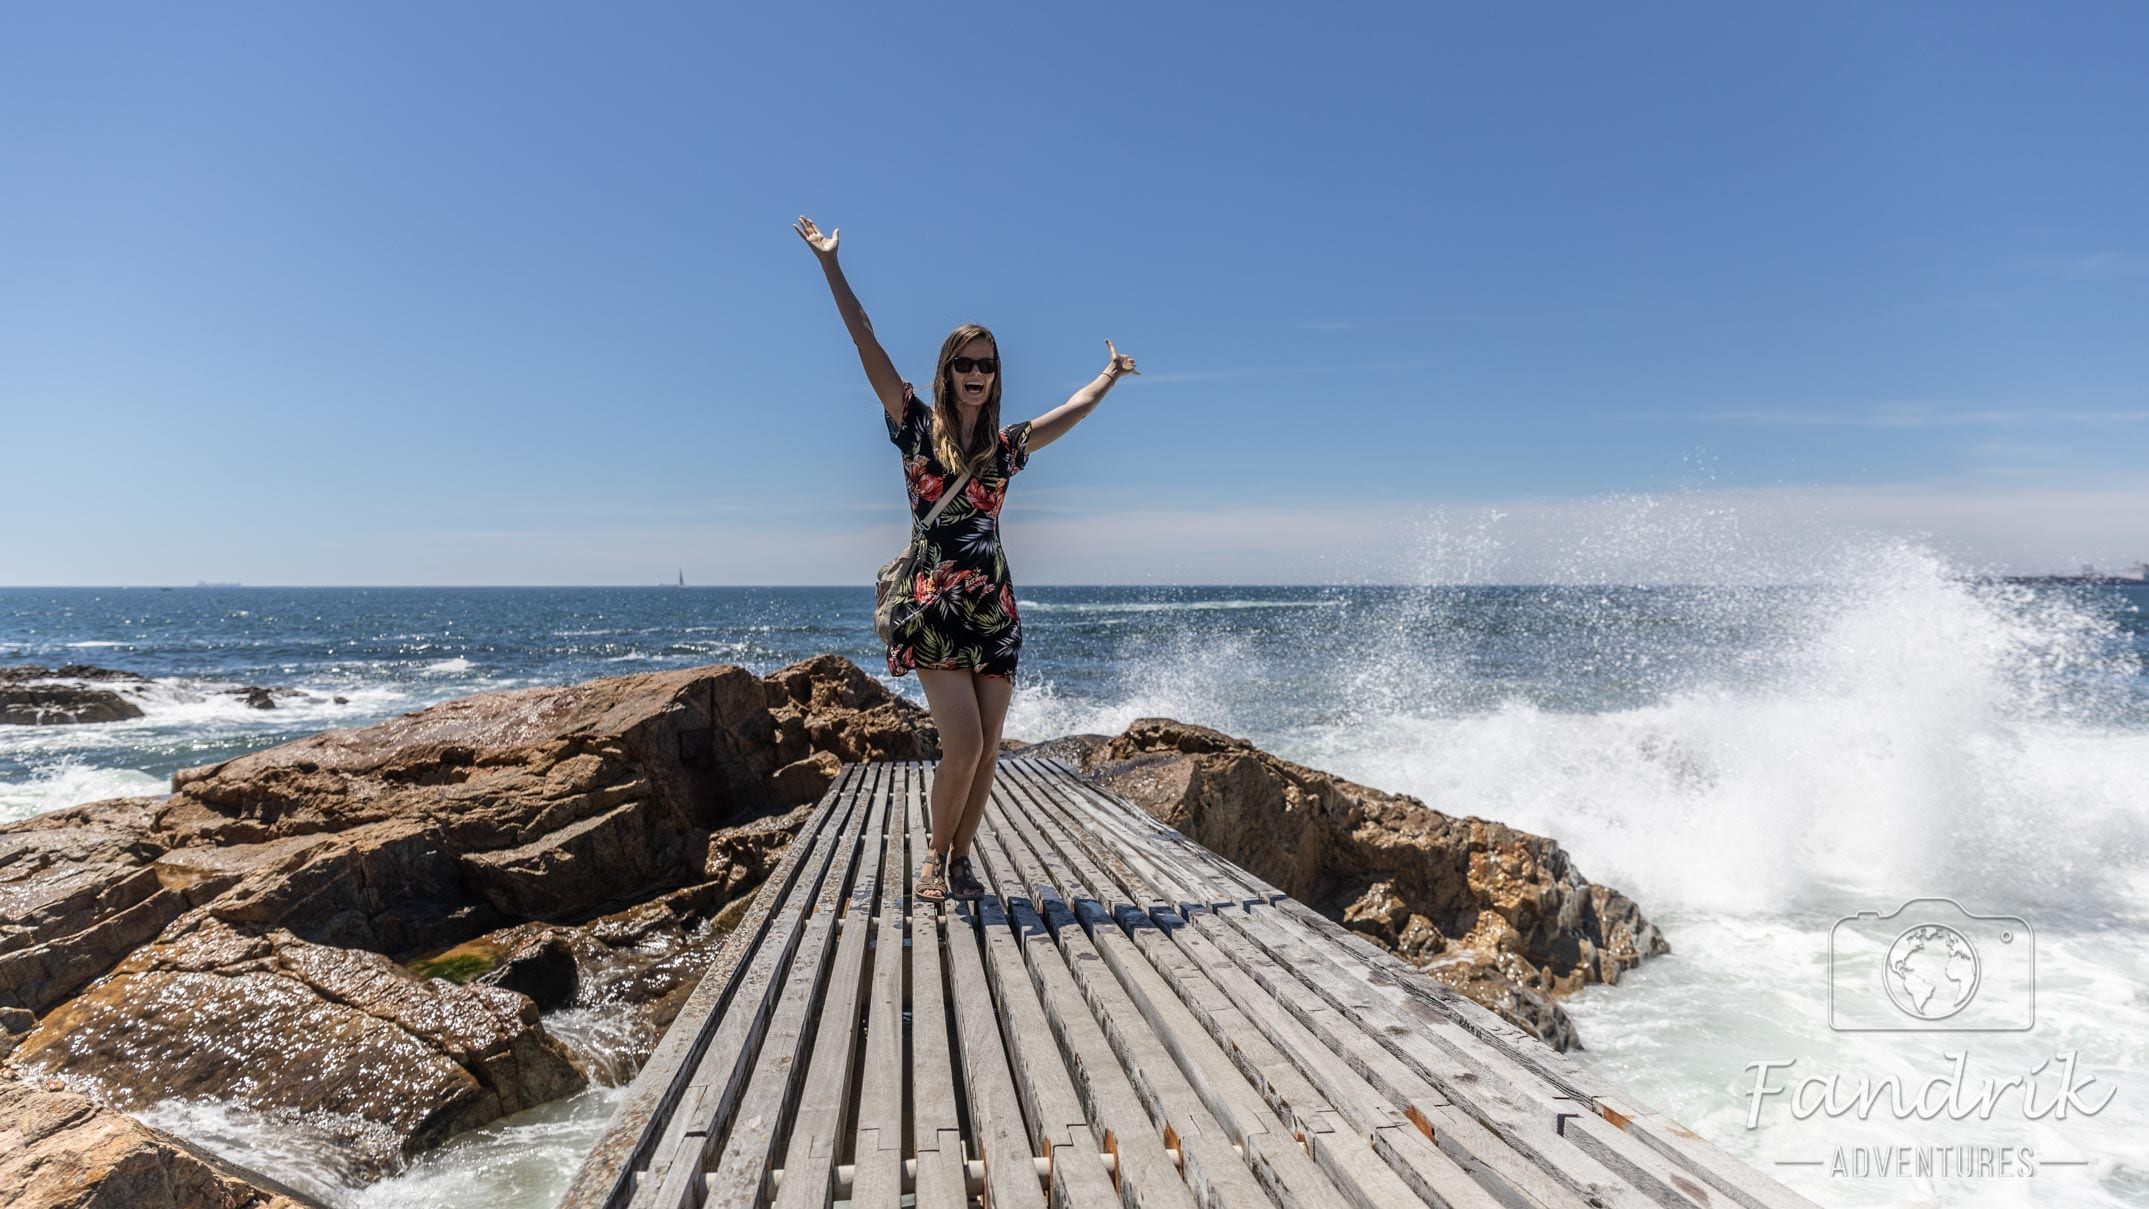 A woman poses on a wooden walkway on the Atlantic coast off Portugal.